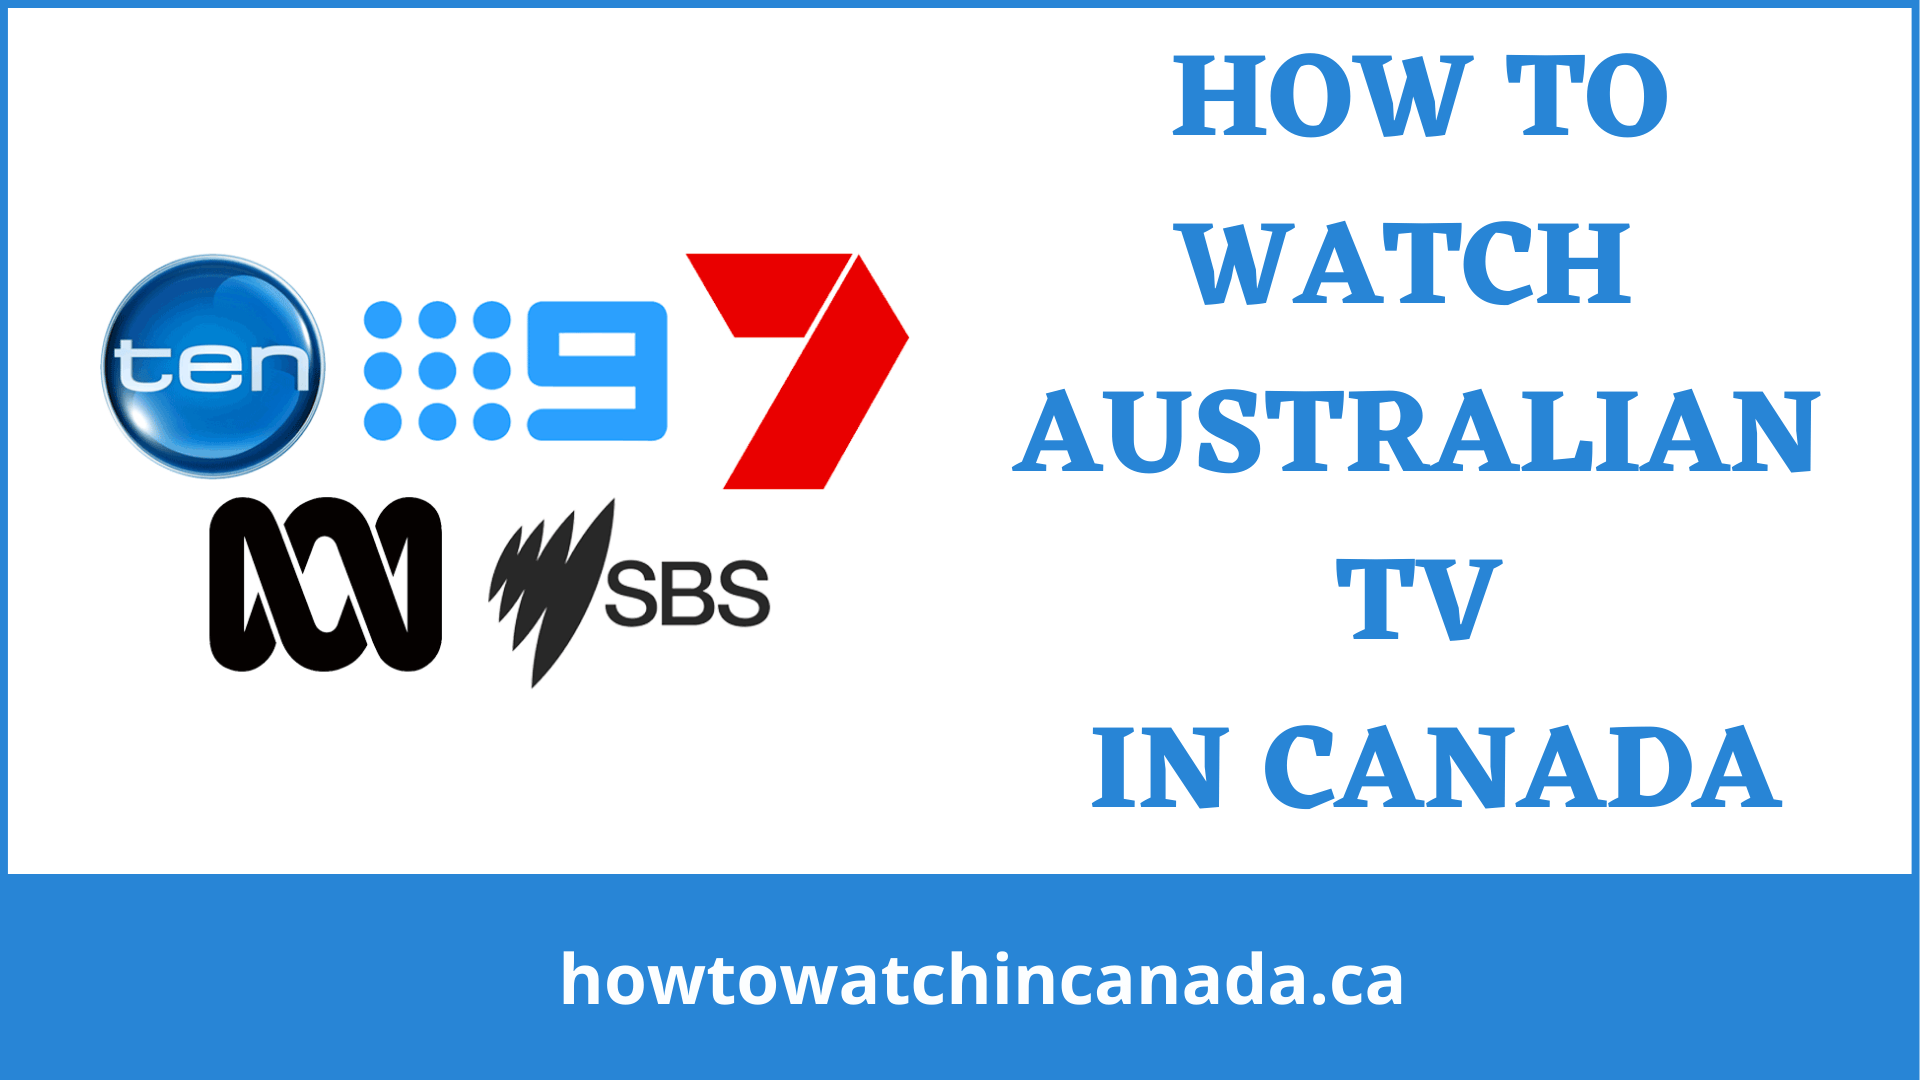 aus-tv-feat-how-to-watch-in-canada-1